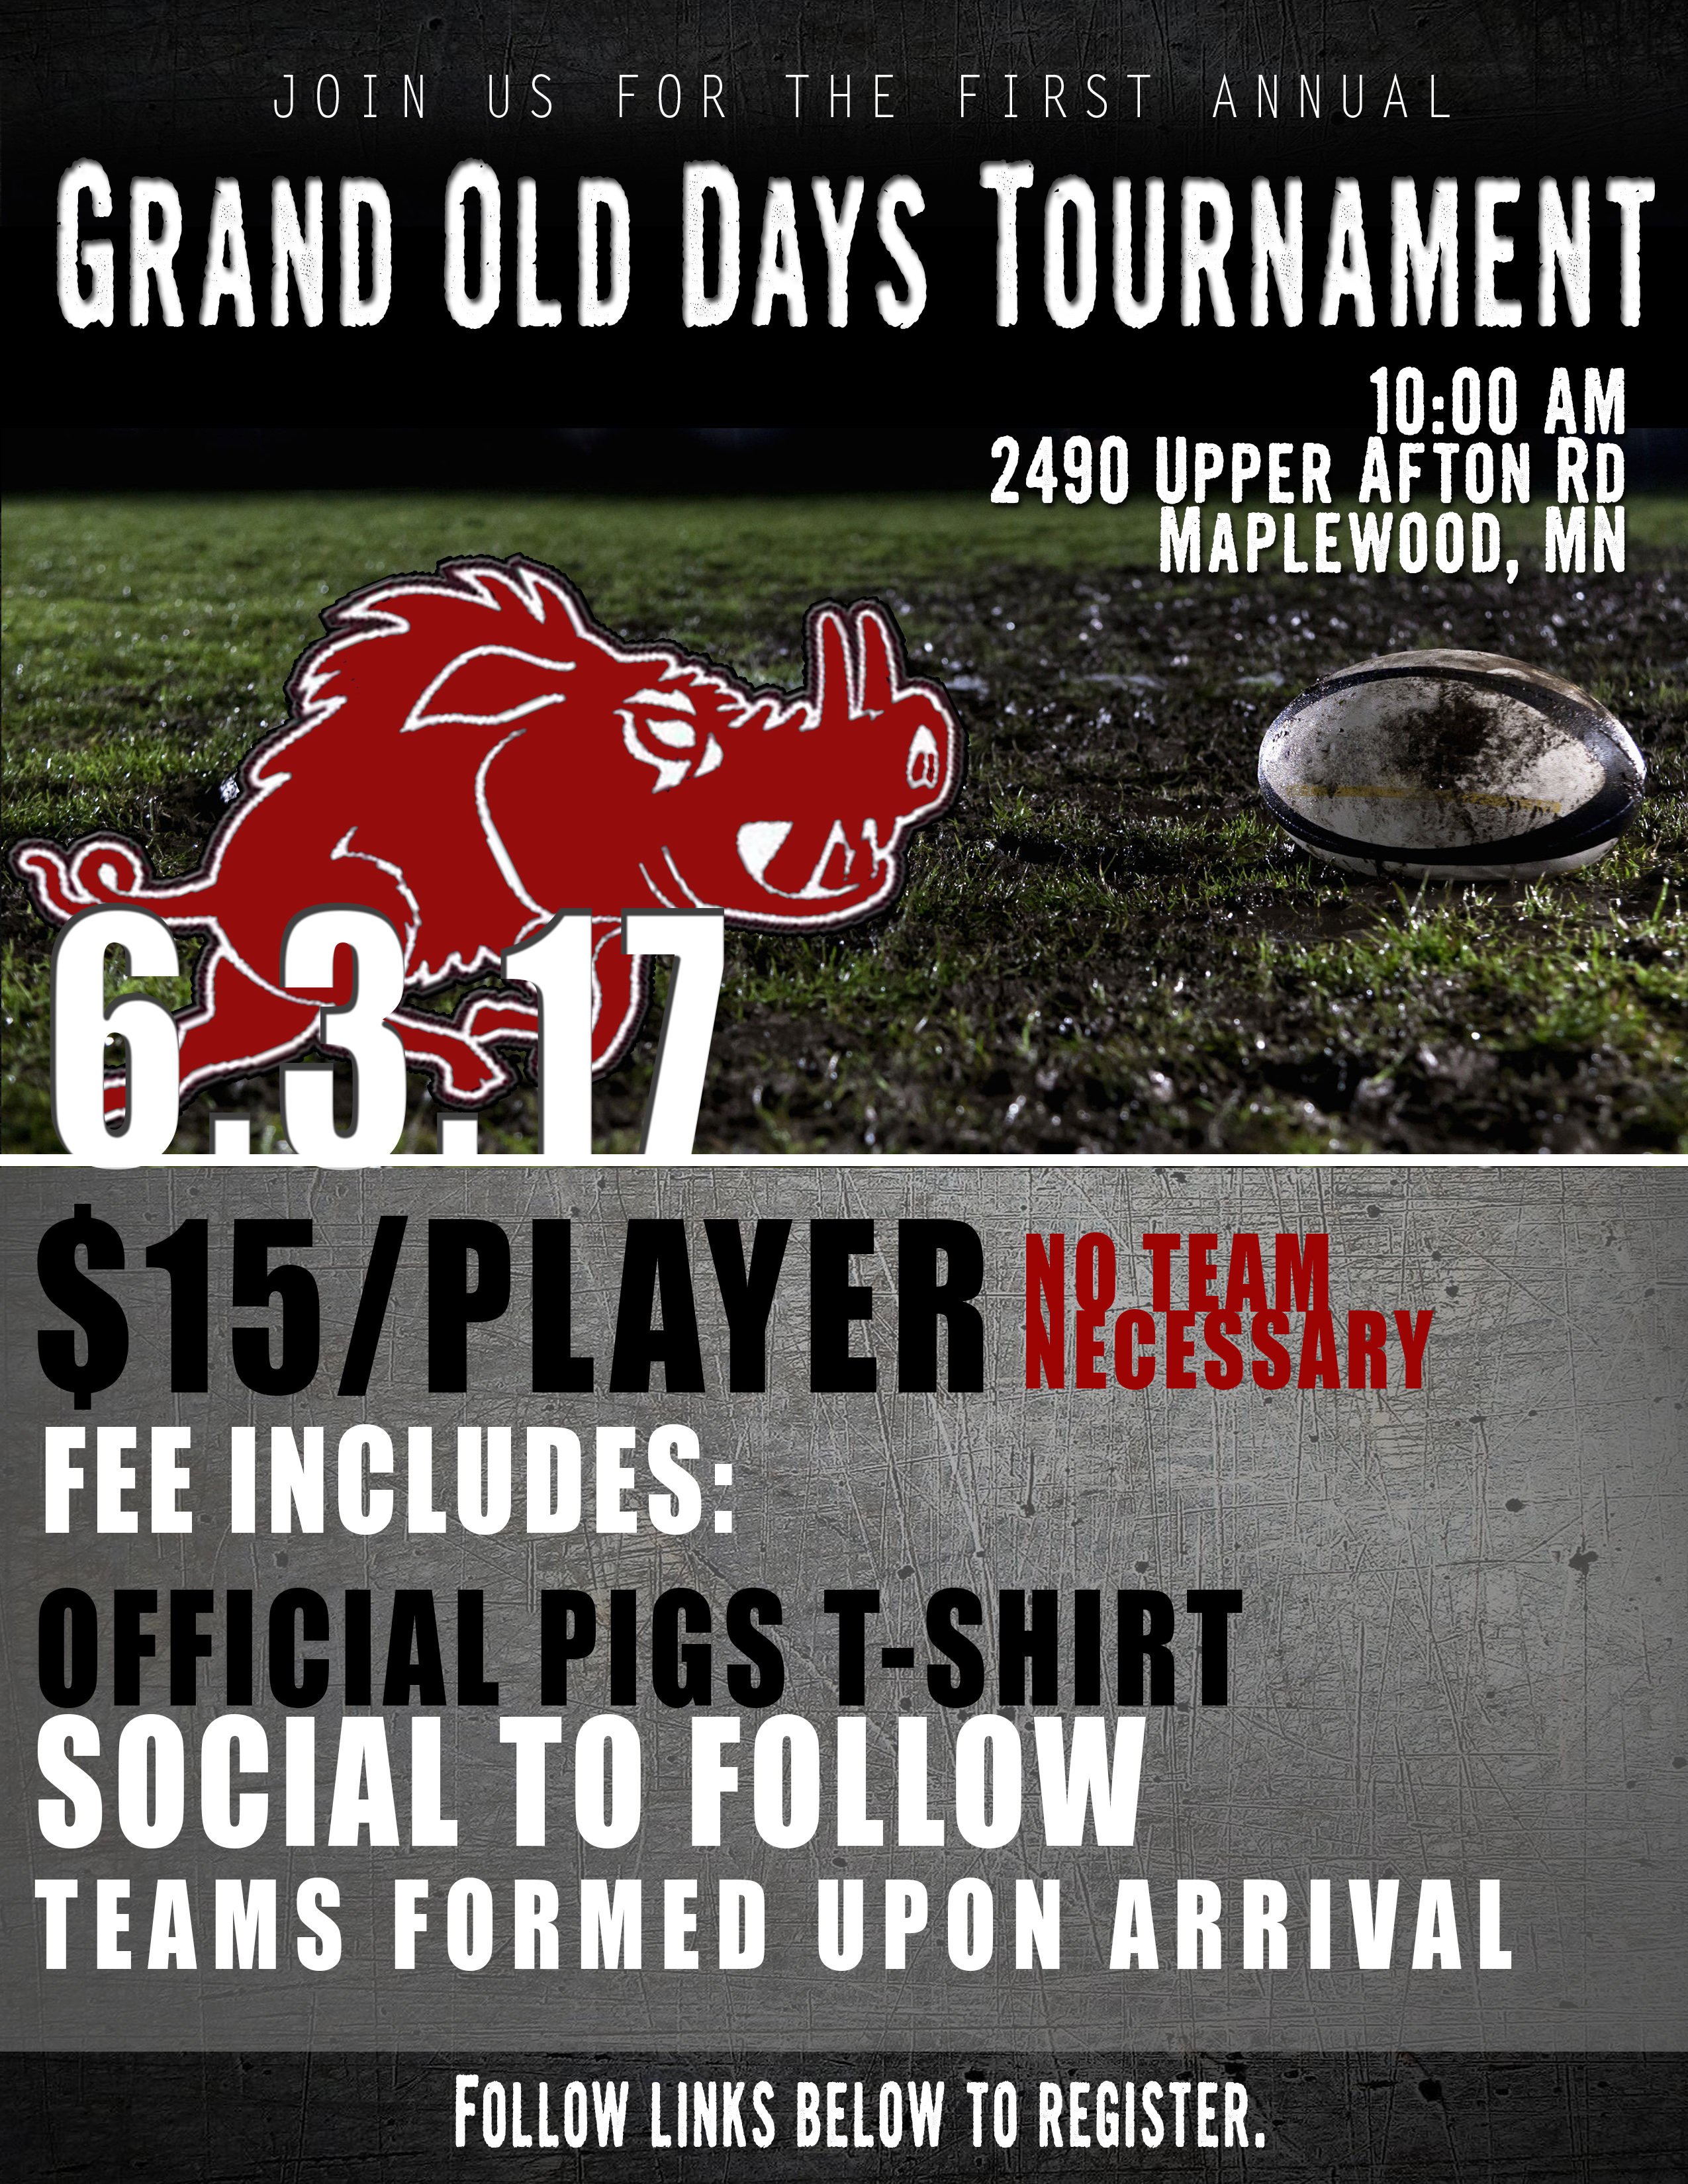 Grand Old Days Flier 2017